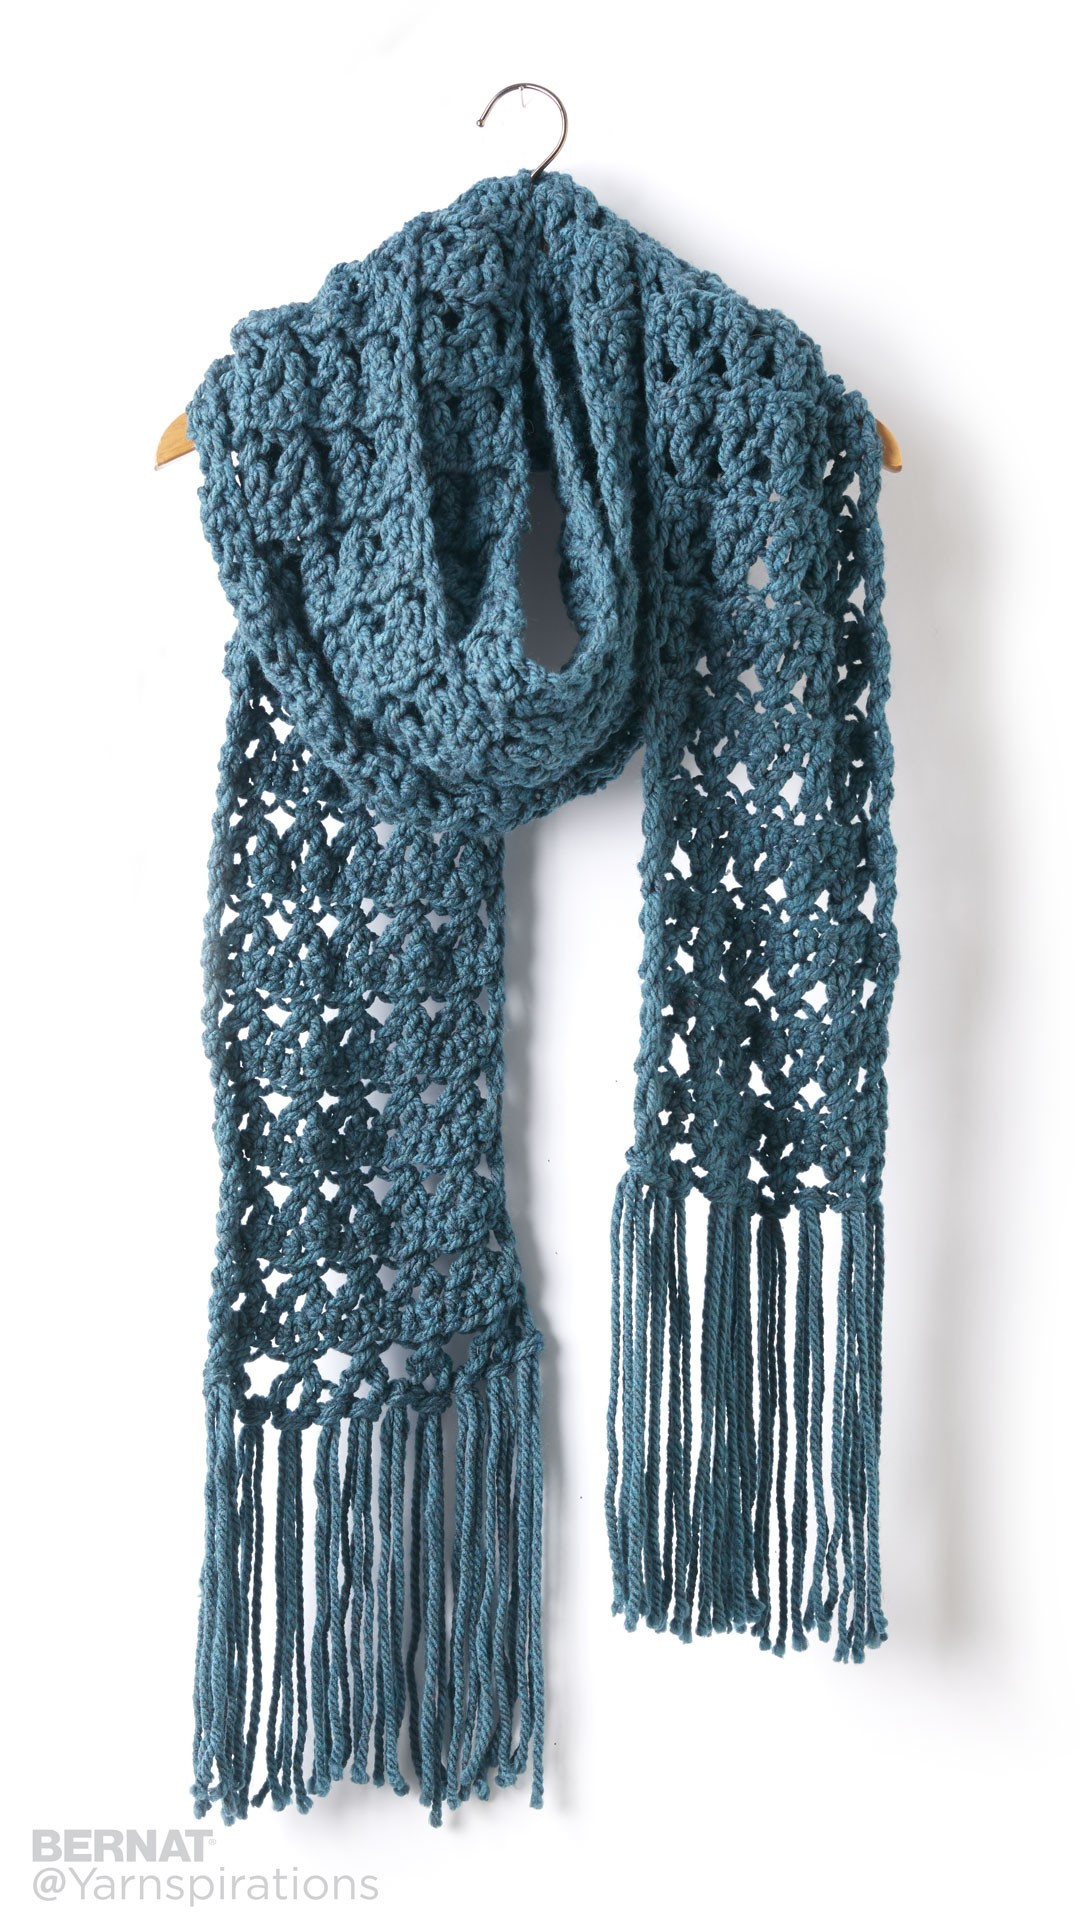 Bernat Crossing Paths Crochet Super Scarf Crochet Pattern